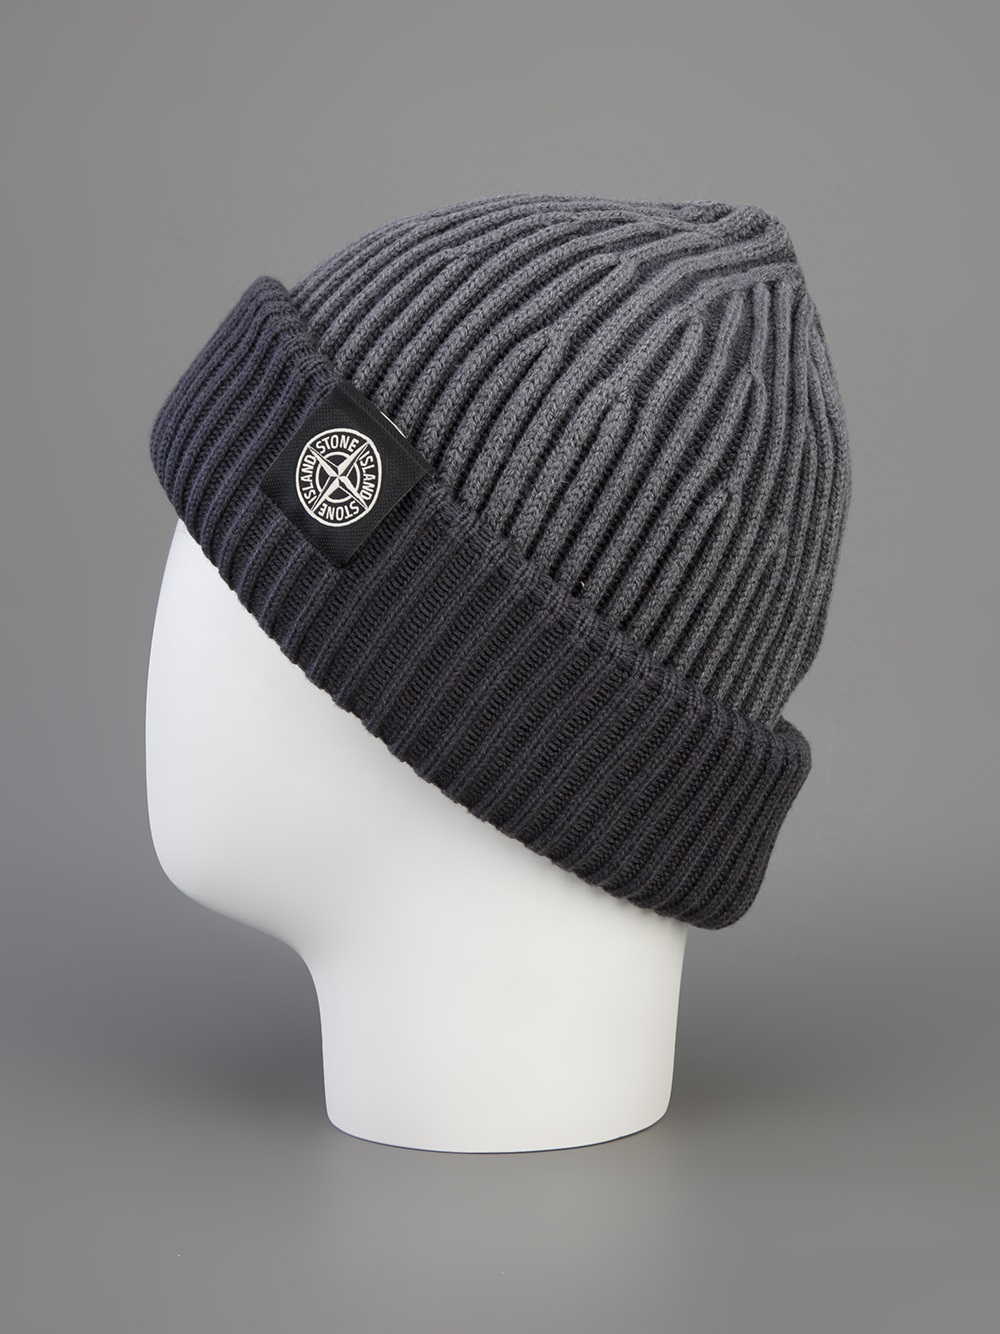 Stone Island Ribbed Beanie In Gray For Men Lyst